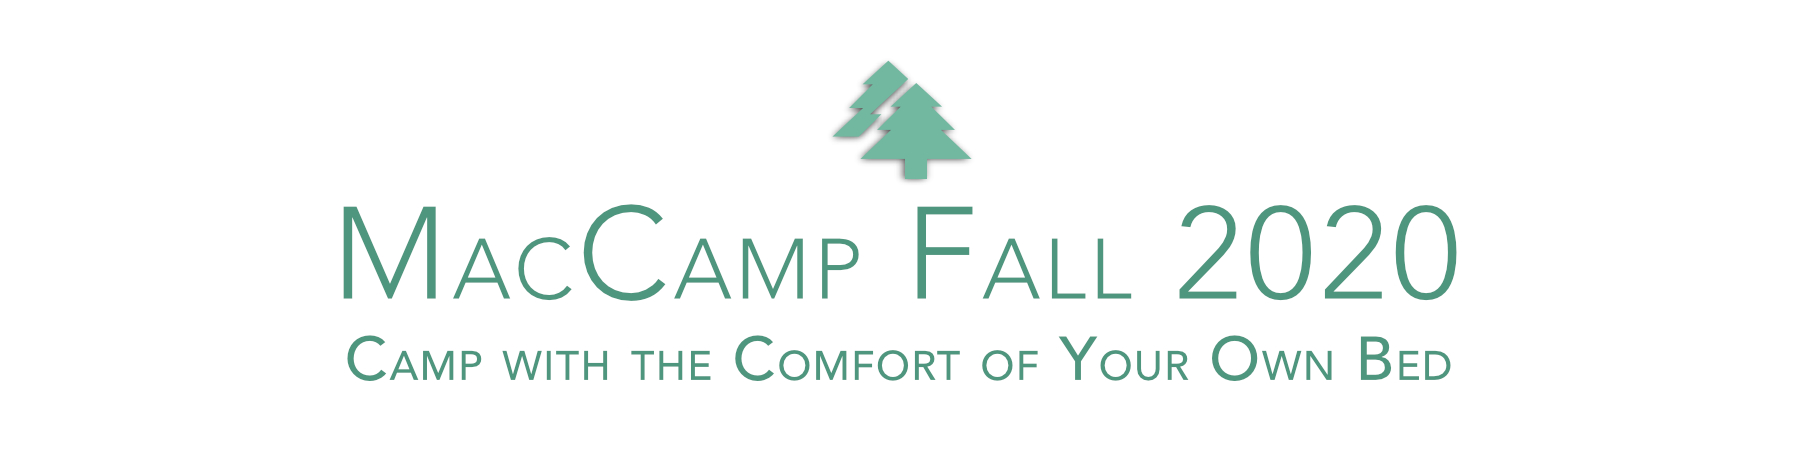 MacCamp Fall 2020 / Check Here for Event Updates!